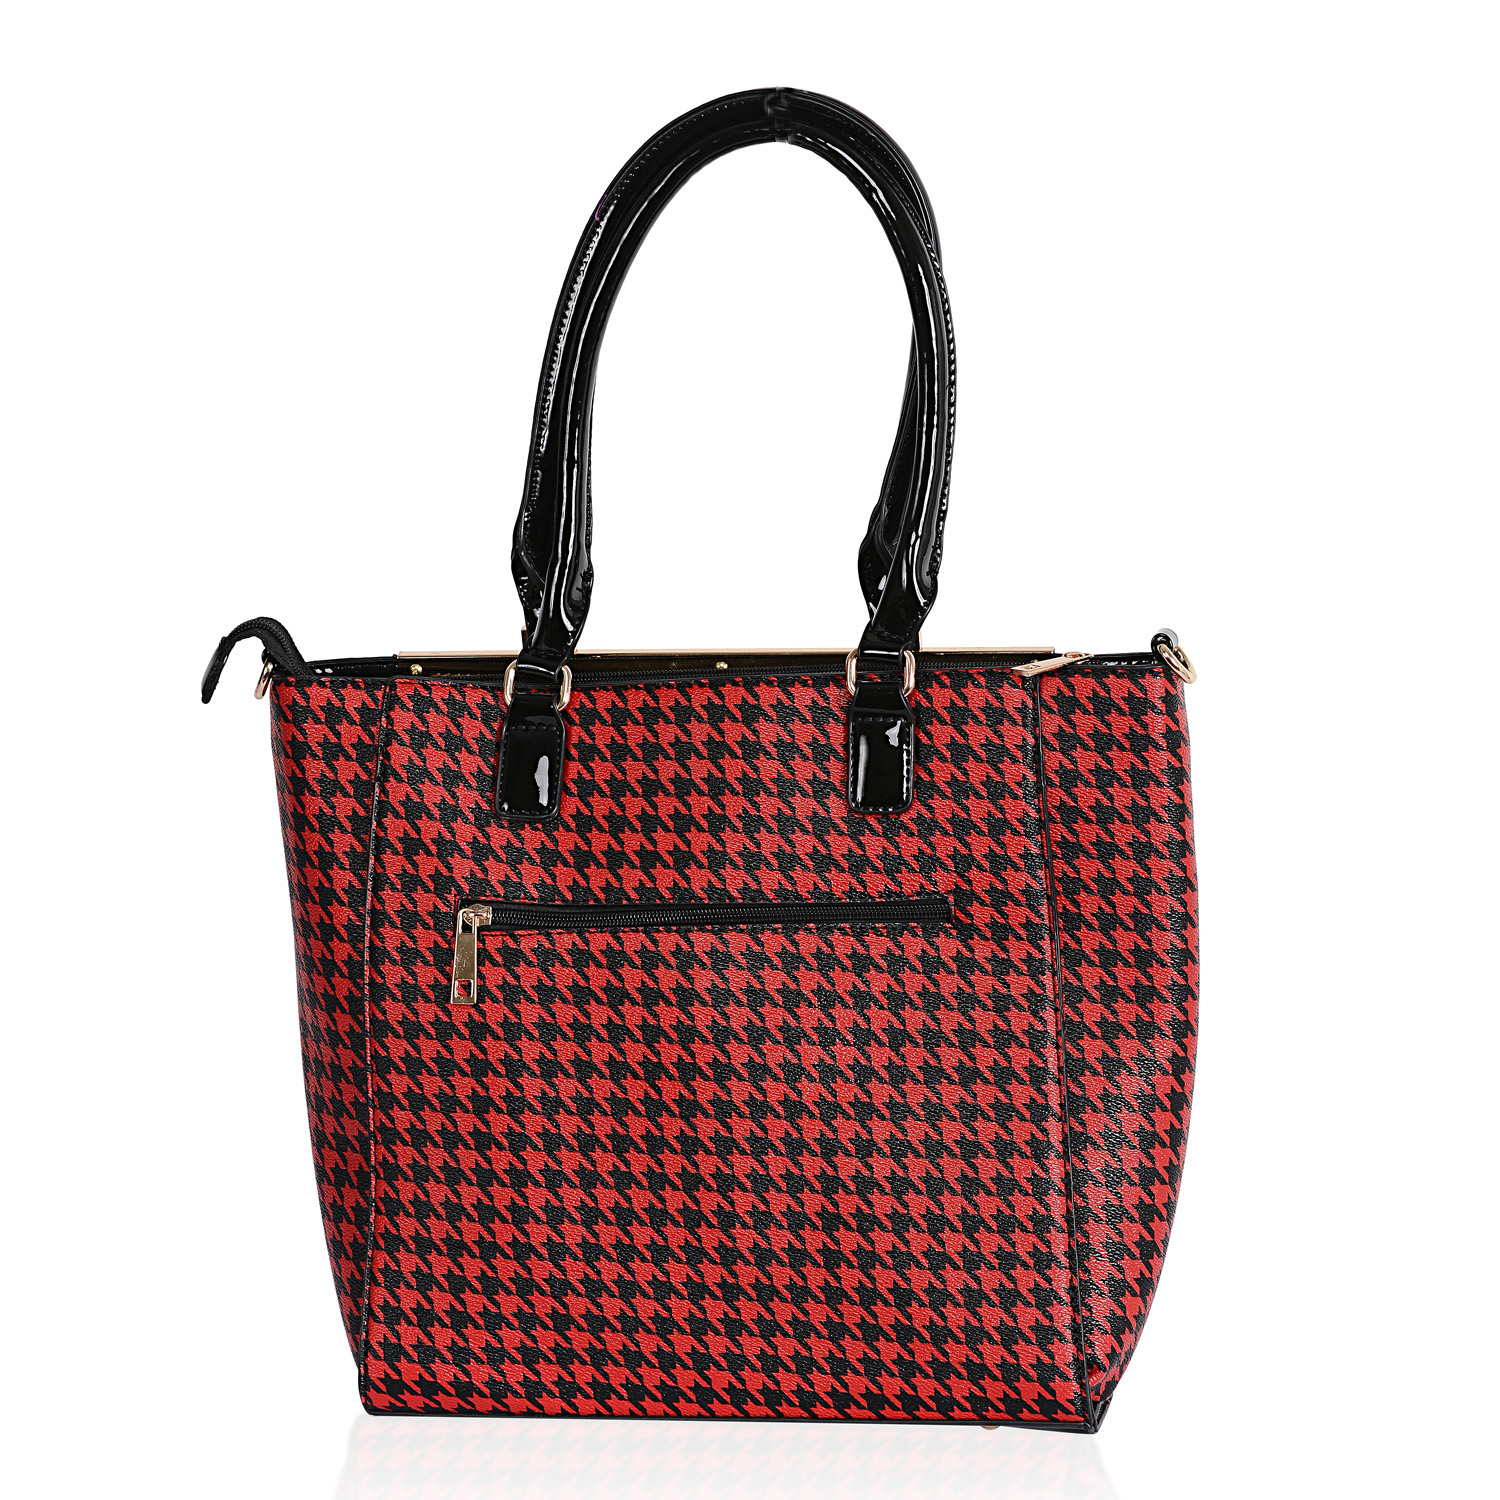 2568258e17b6 Black and Red Houndstooth Print Vegan Leather Handbag (14x5x12 in ...